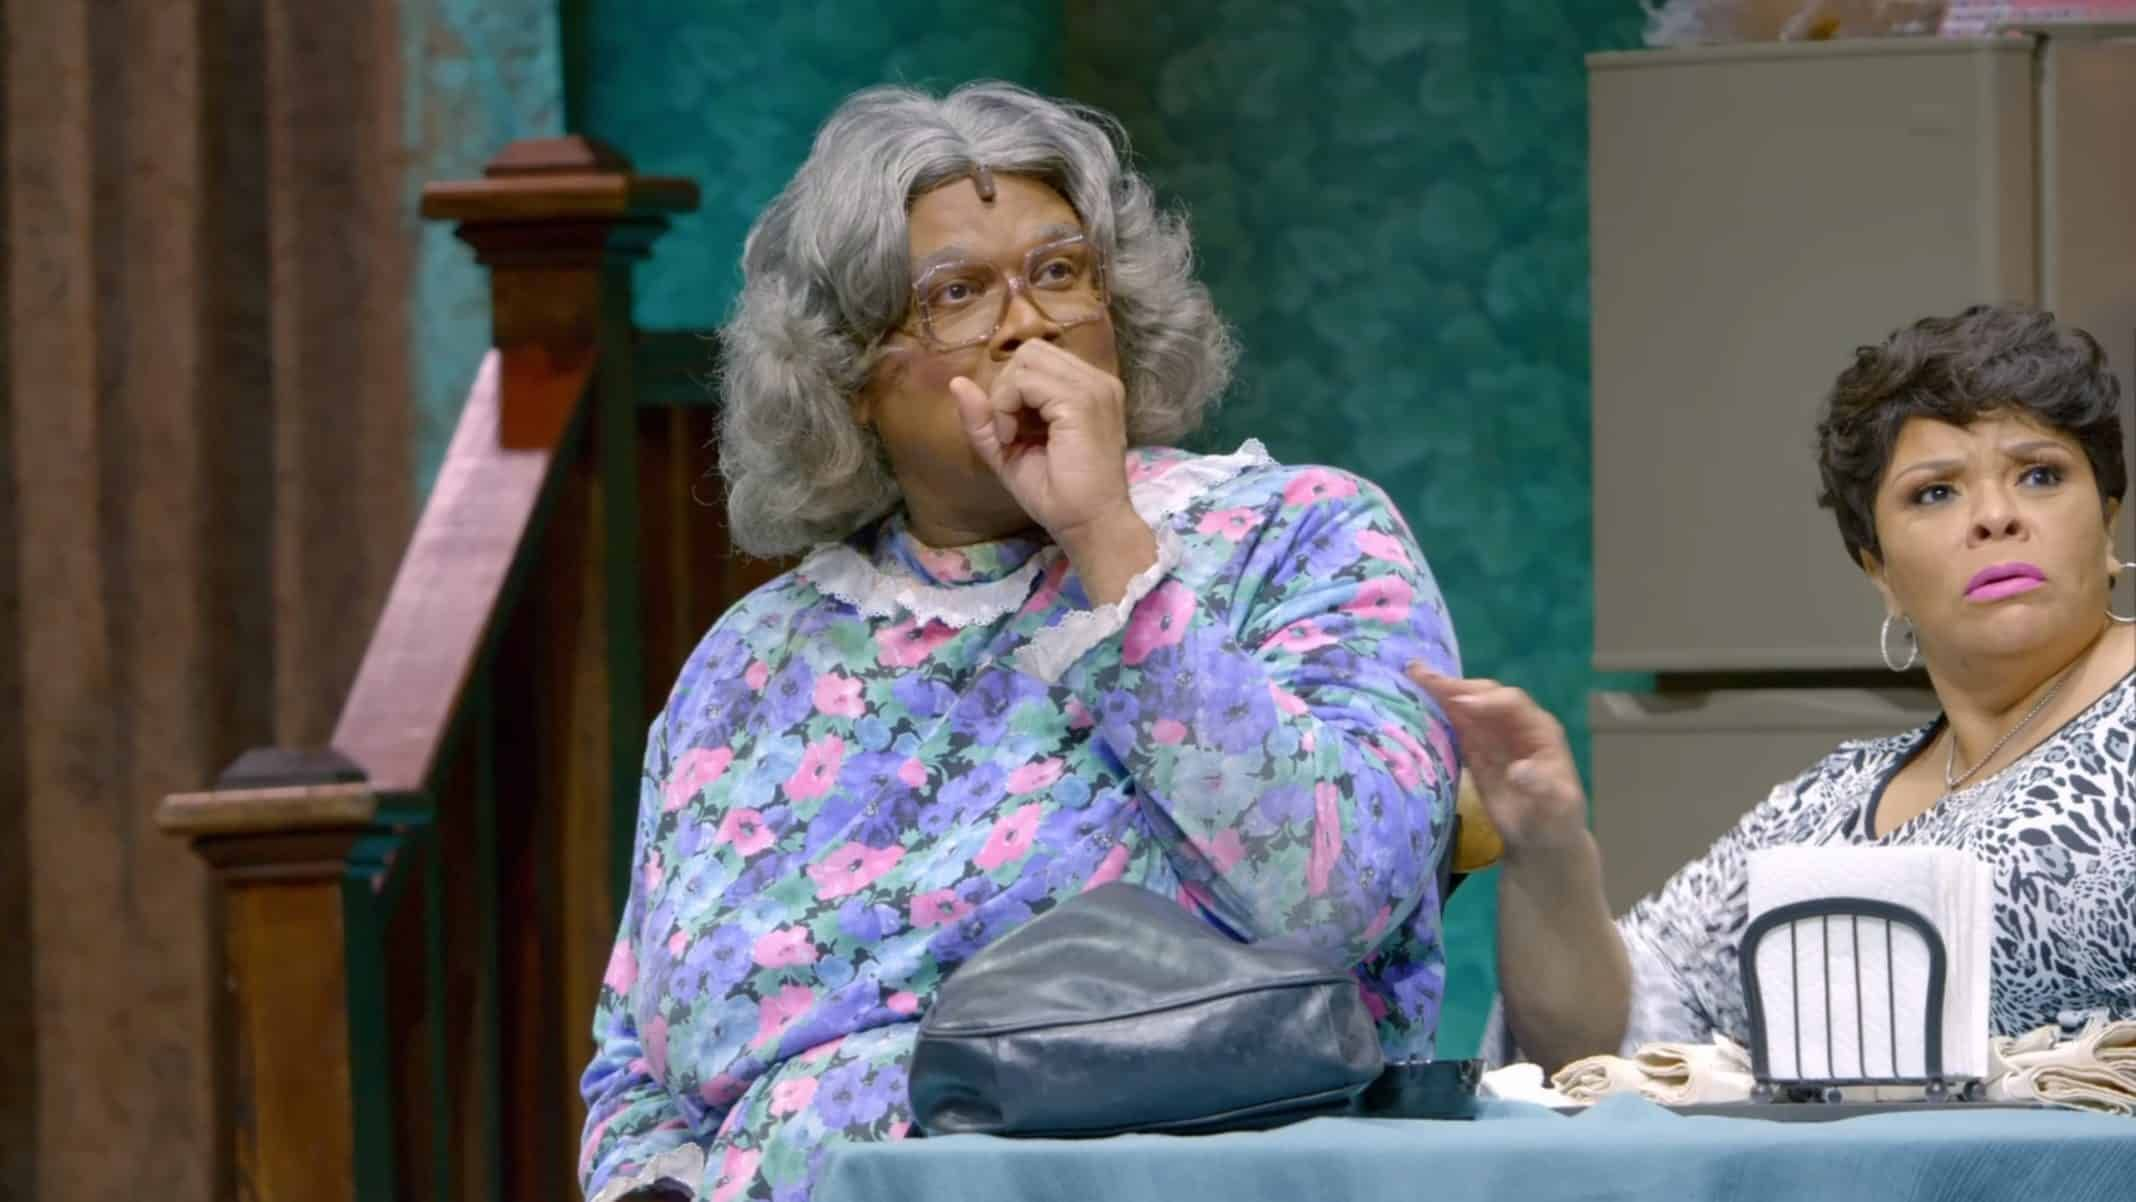 Tyler Perry's Madea's Farewell Play Review/Summary (with